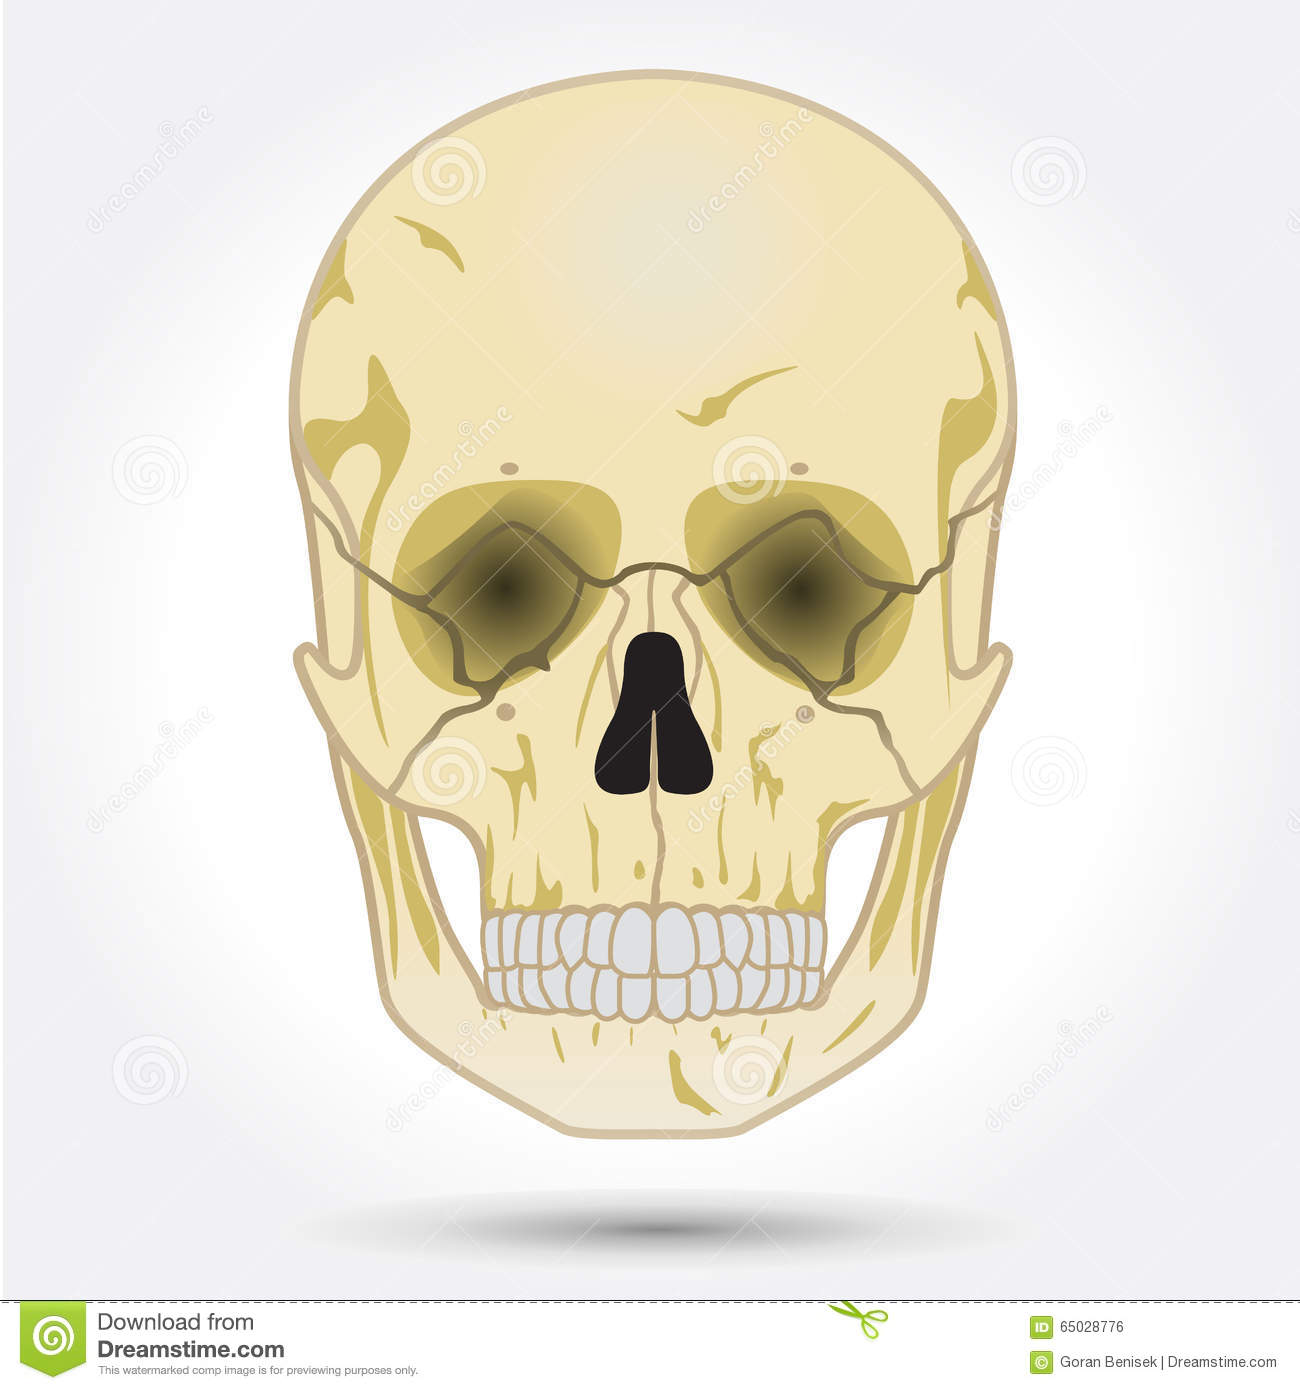 Human Skull Front View Stock Vector Illustration Of Gothic 65028776